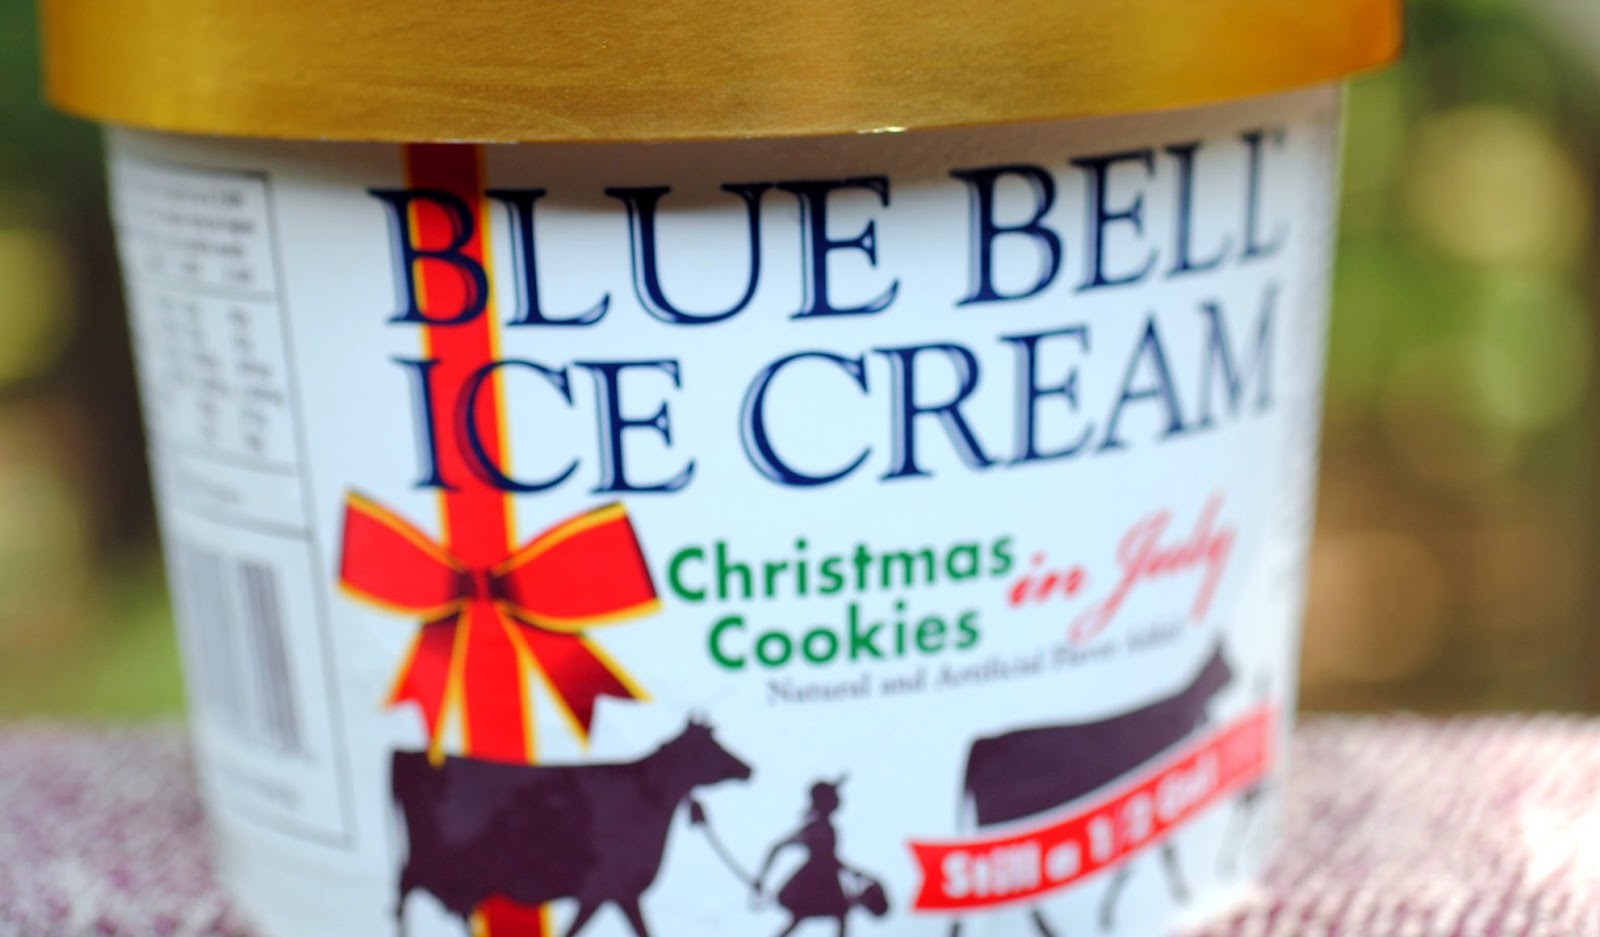 Christmas Cookies Blue Bell  food and ice cream recipes REVIEW Blue Bell Christmas